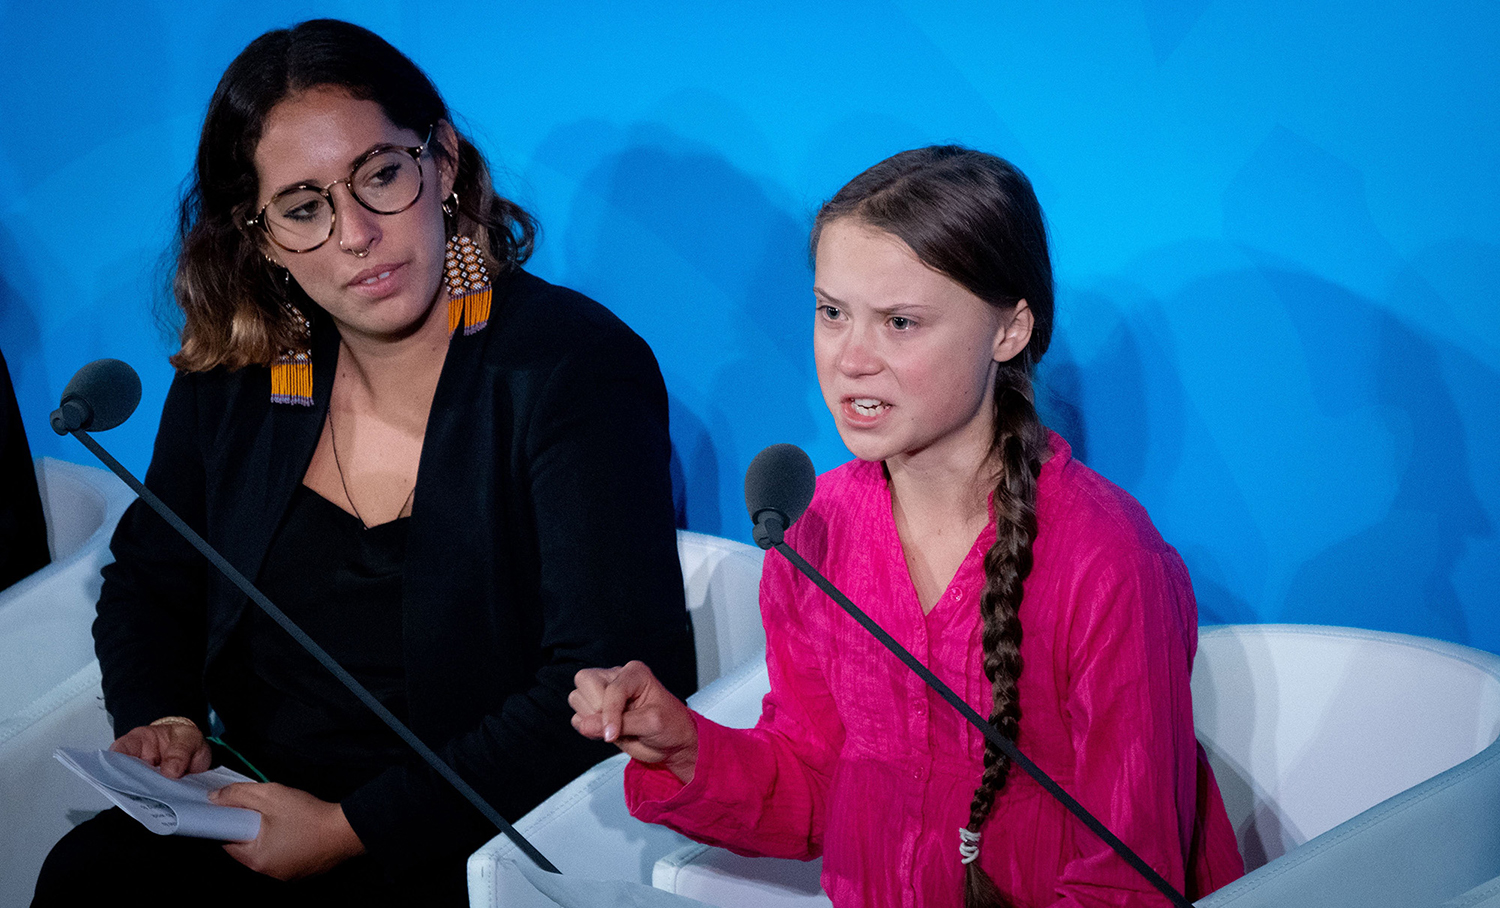 Climate activist Greta Thunberg, right, speaks at the United Nations Climate Change Conference on Sept. 23, 2019 in New York City. (Kay Nietfeld/DPA/Zuma Press/TNS)